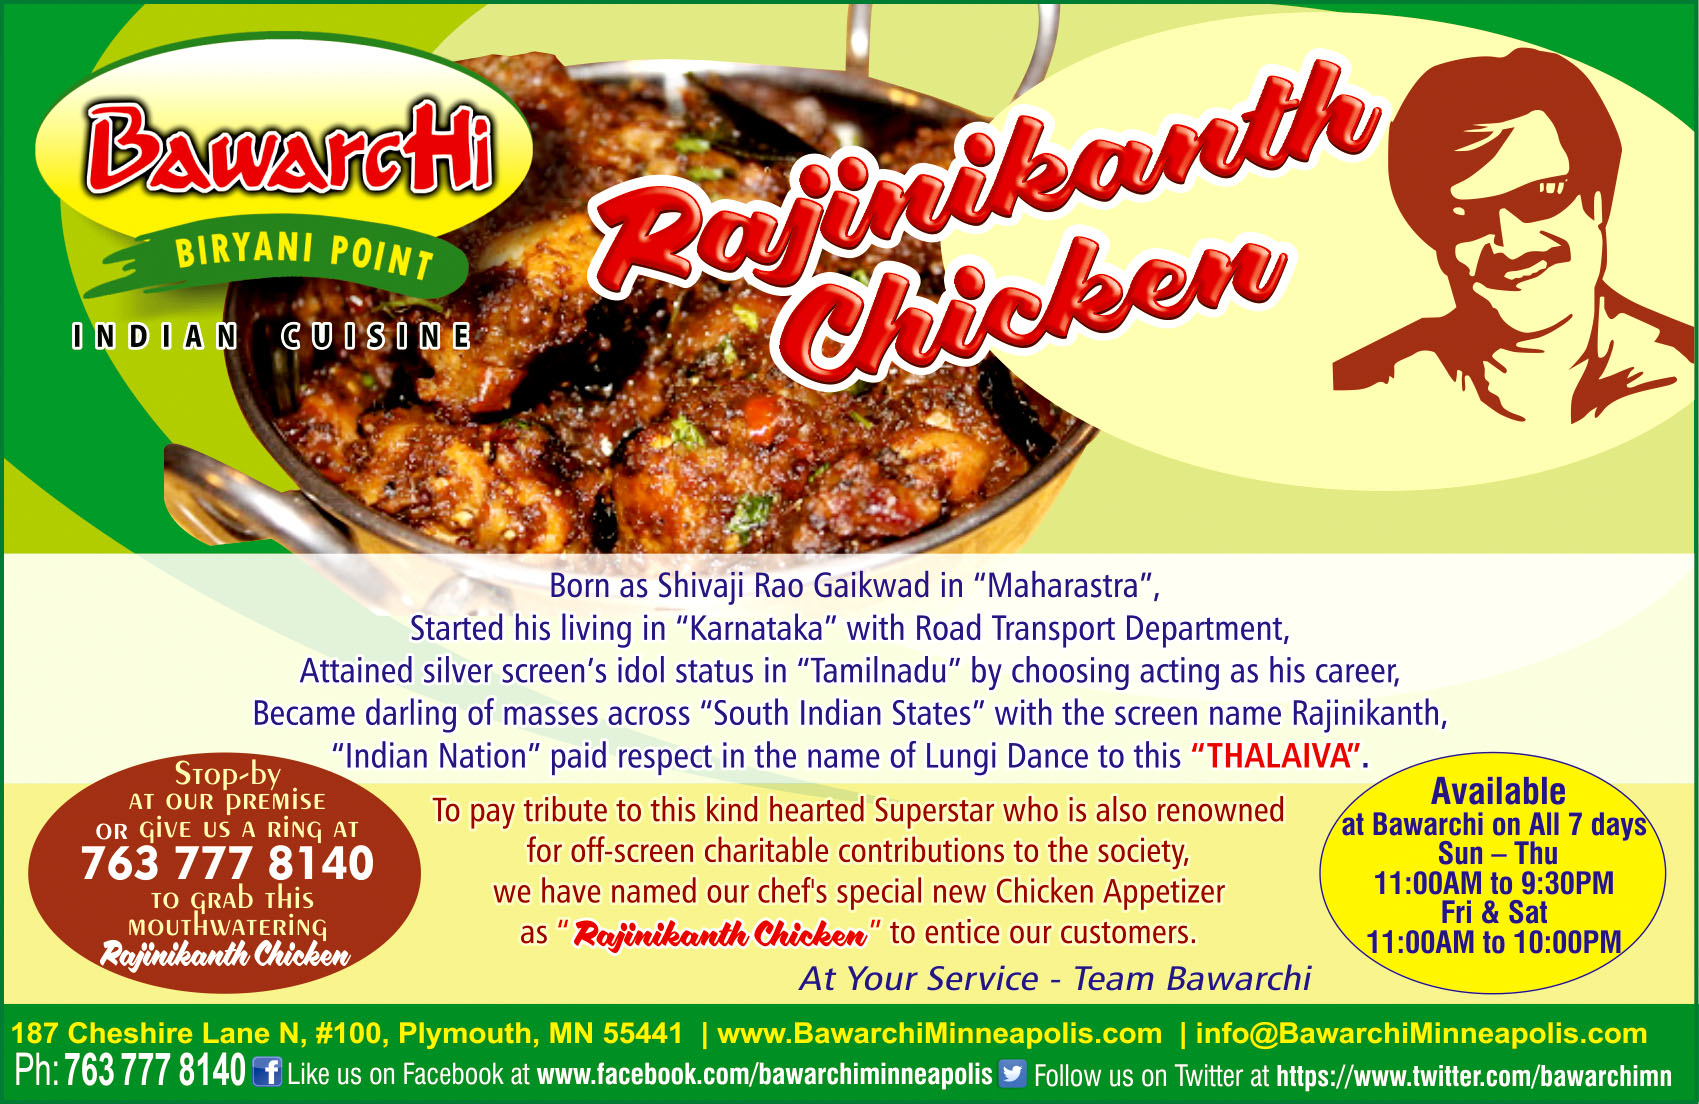 Rajinikanth Chicken By Bawarchi Indian Cuisine Minnesota